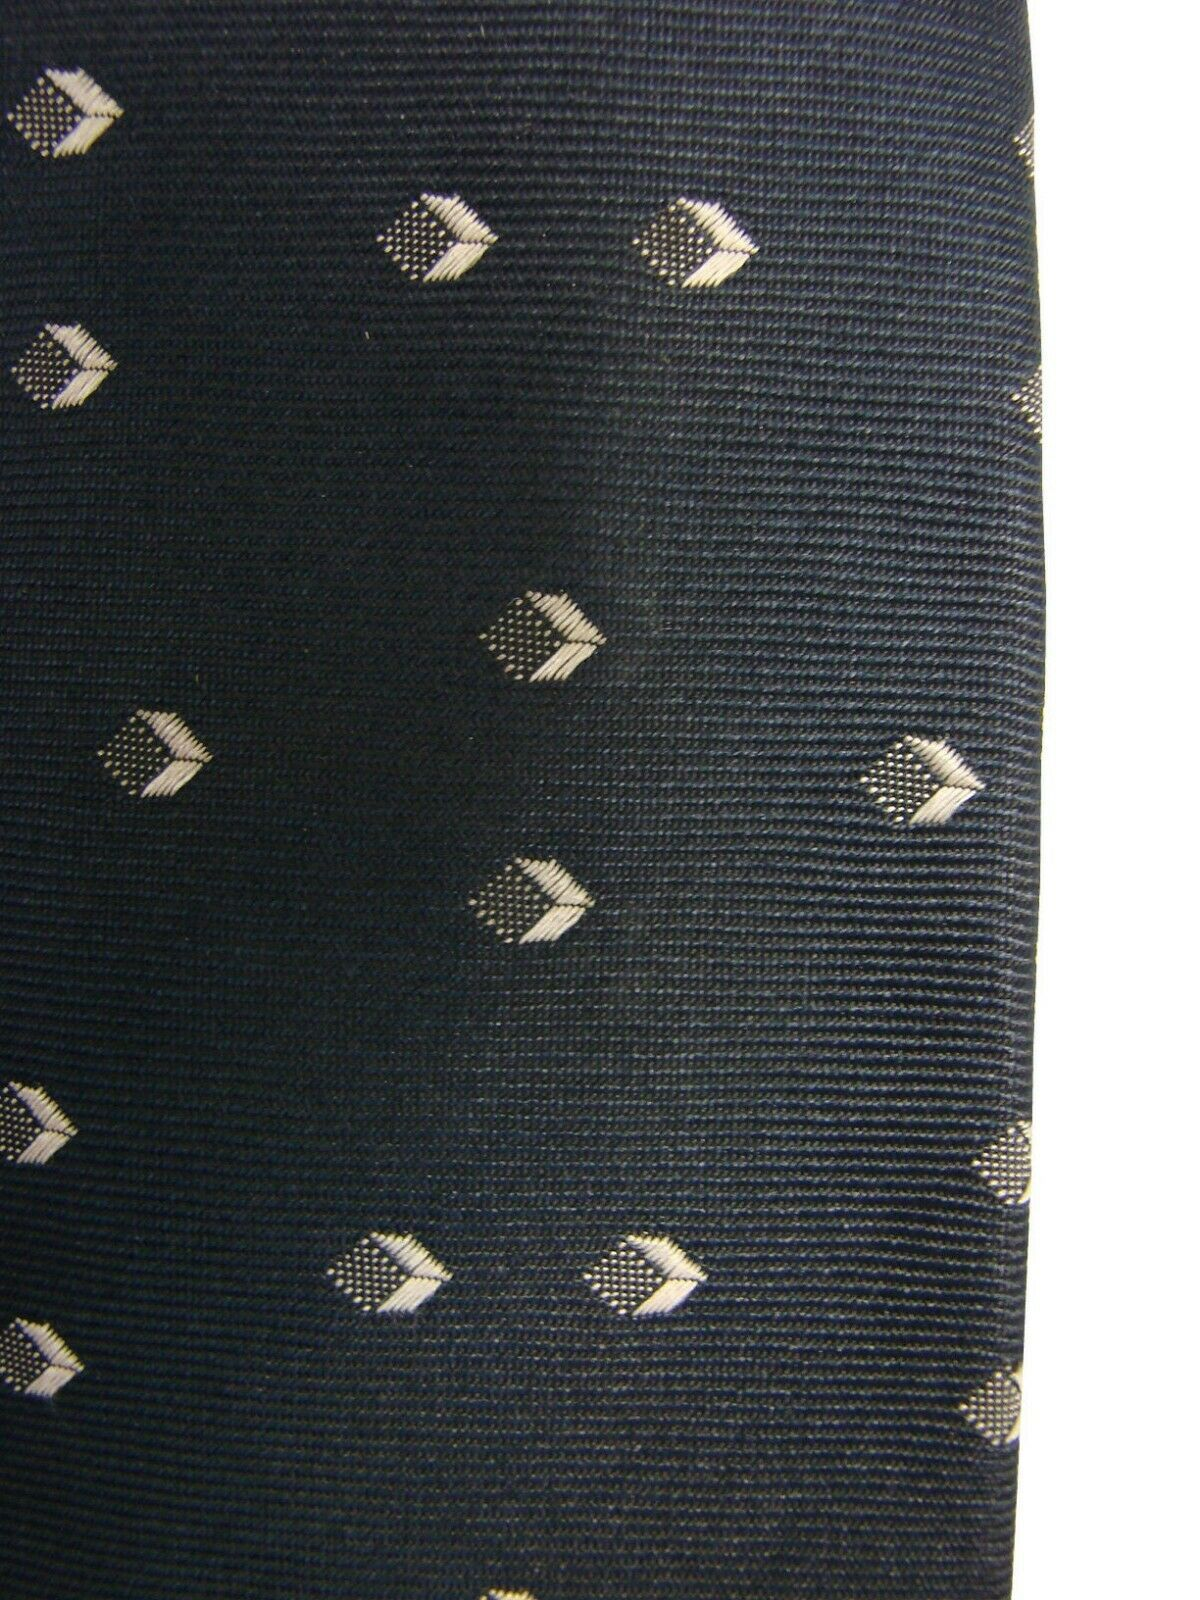 RALPH LAUREN POLO Mens Tie Black - Squares